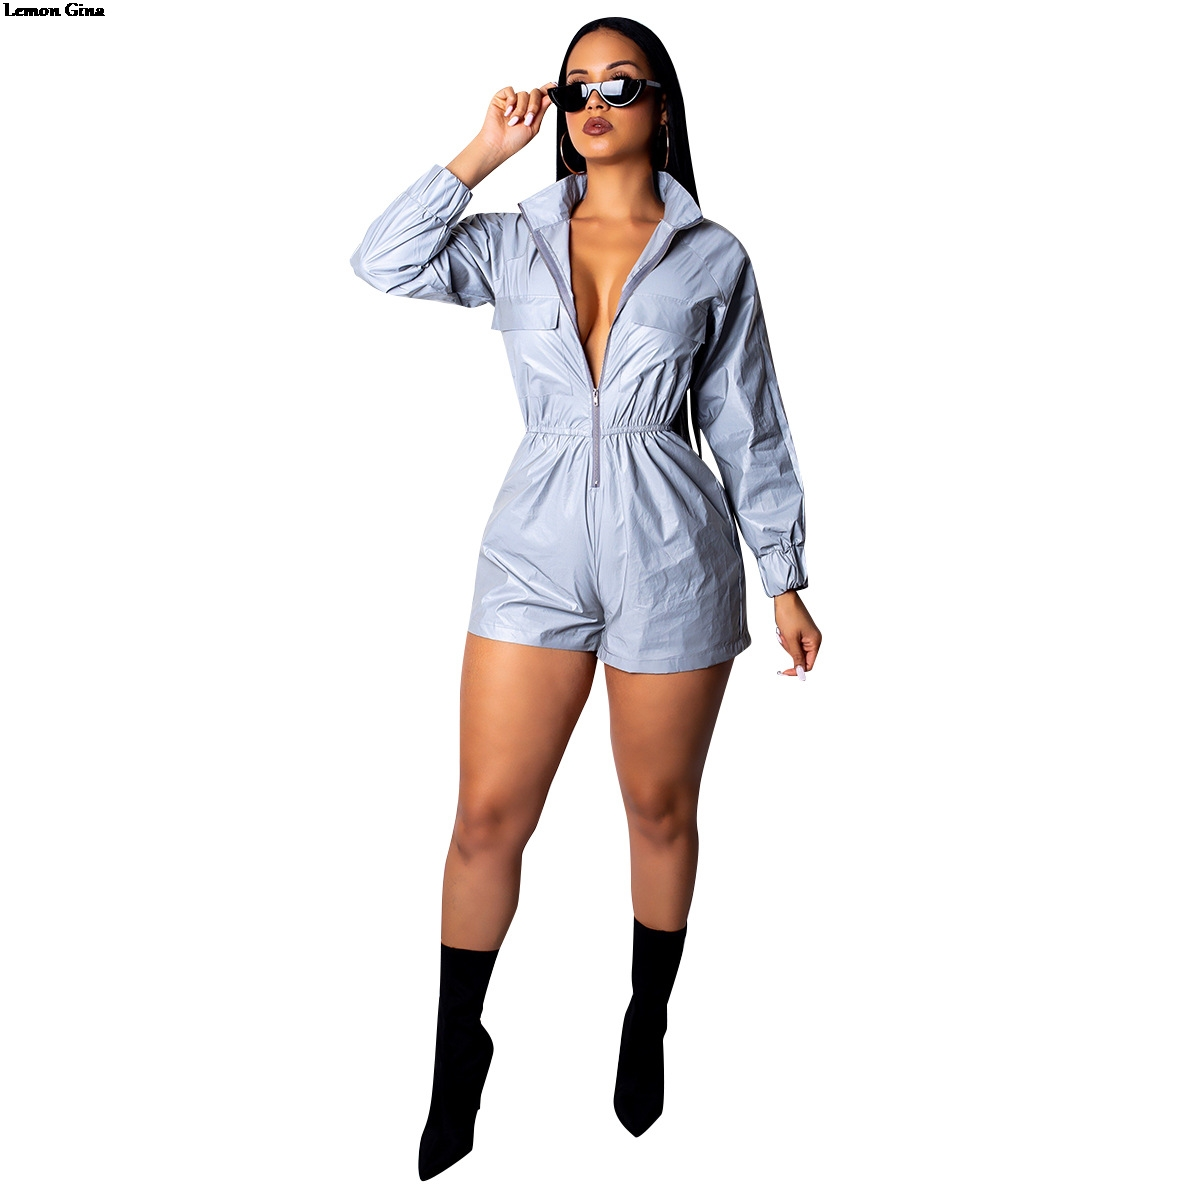 Lemon Gina 2019 summer moto biker reflective zipper up women jumpsuit casual long sleeve playsuit vintage romper outfit ALS077